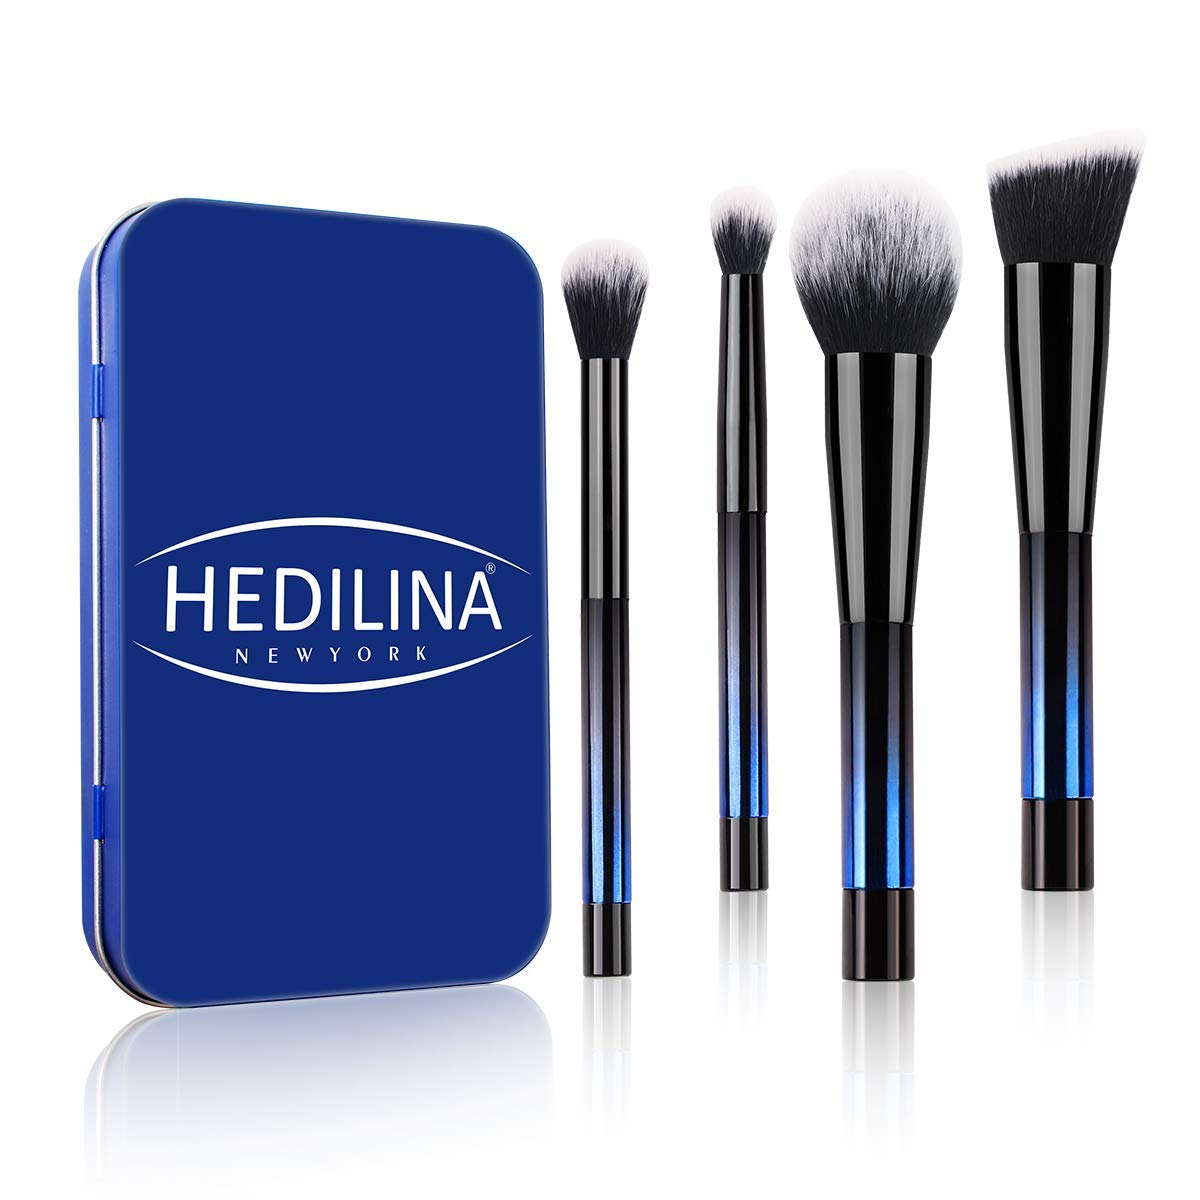 Travel Makeup Brush Set - HEDILINA 4 pcs Makeup Brushes Kit, Powder Brush, Foundation Brush, Eyeshadow Brushes, all in a Compact Box, Do Your Makeup Like a Pro Anytime! (Sapphire Blue)